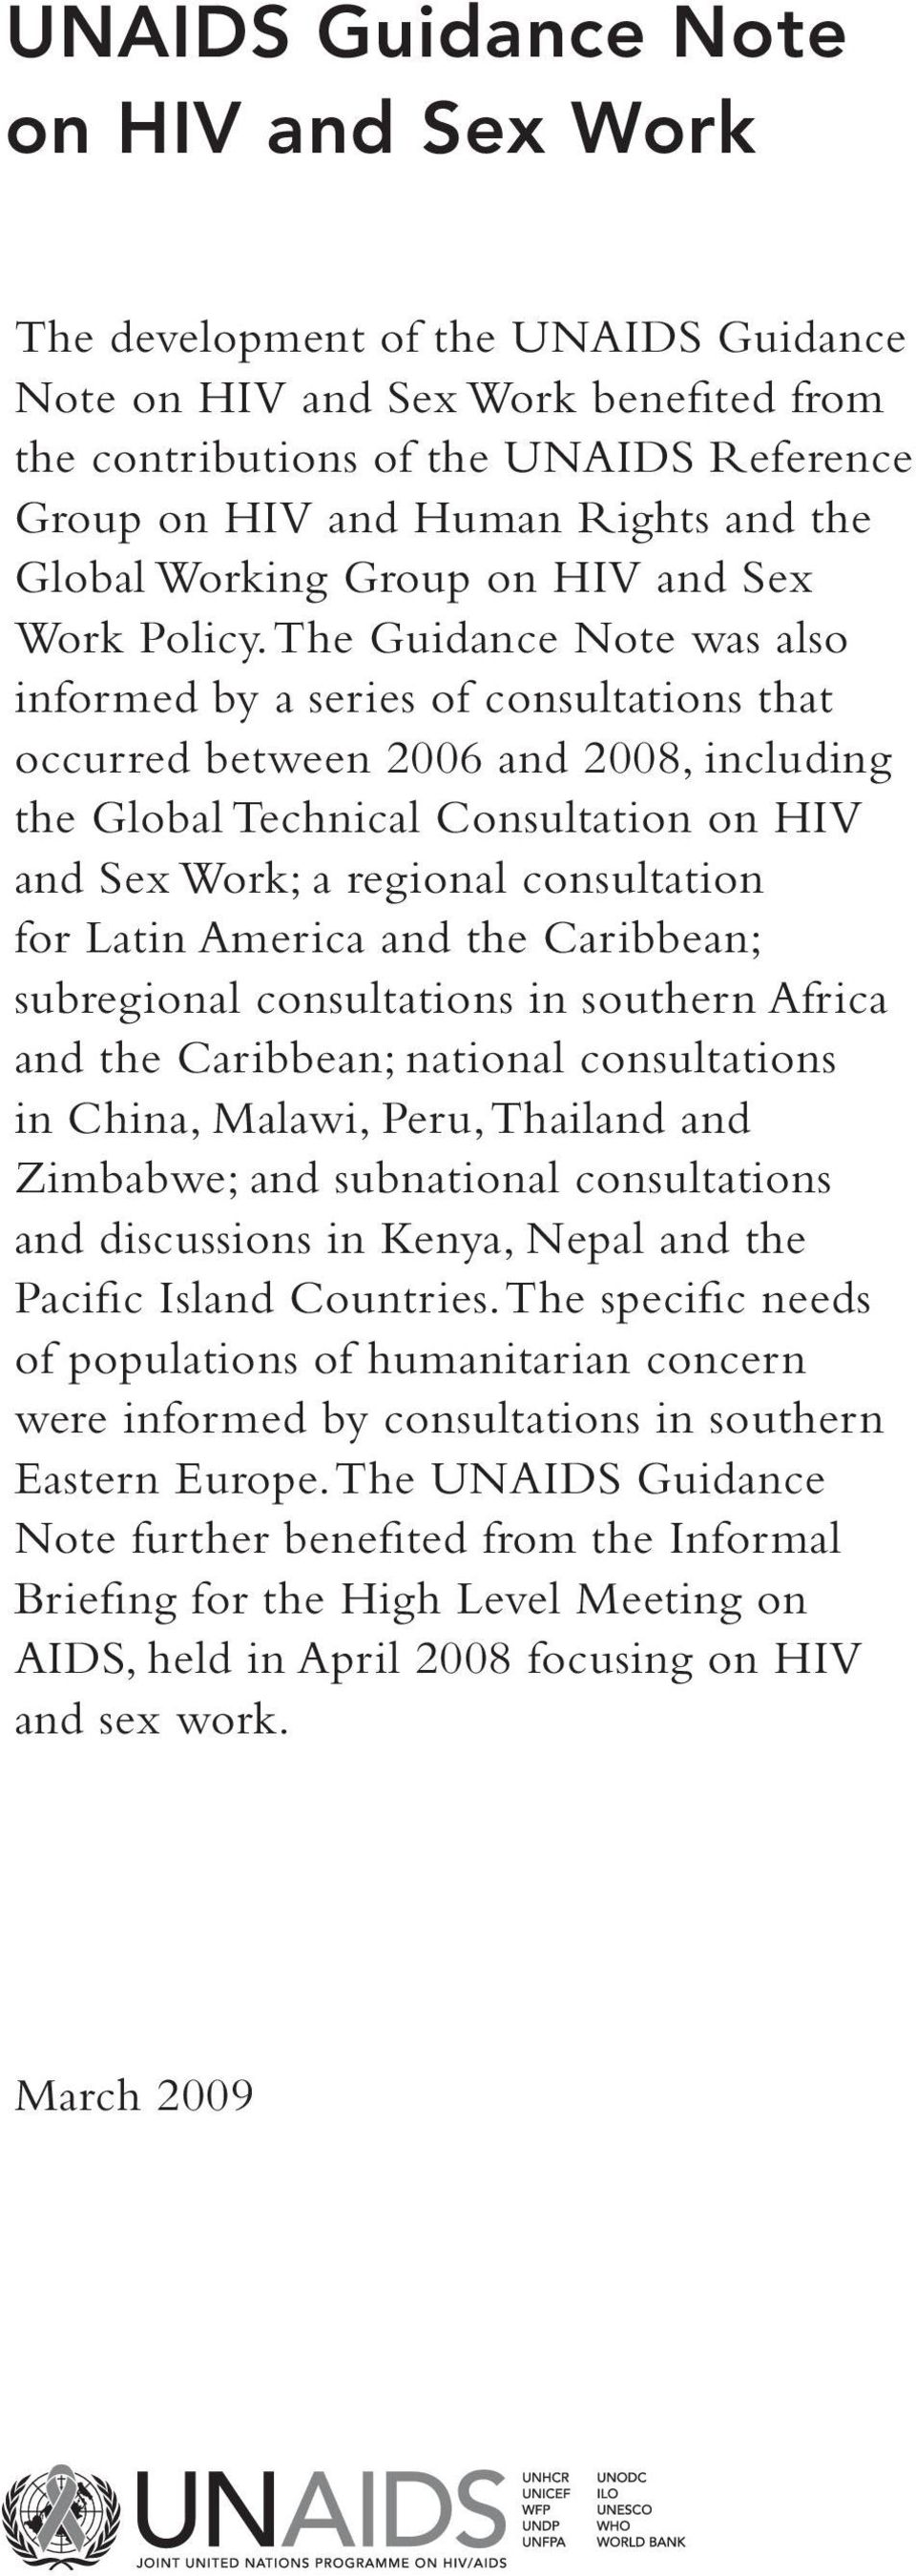 The Guidance Note was also informed by a series of consultations that occurred between 2006 and 2008, including the Global Technical Consultation on HIV and Sex Work; a regional consultation for